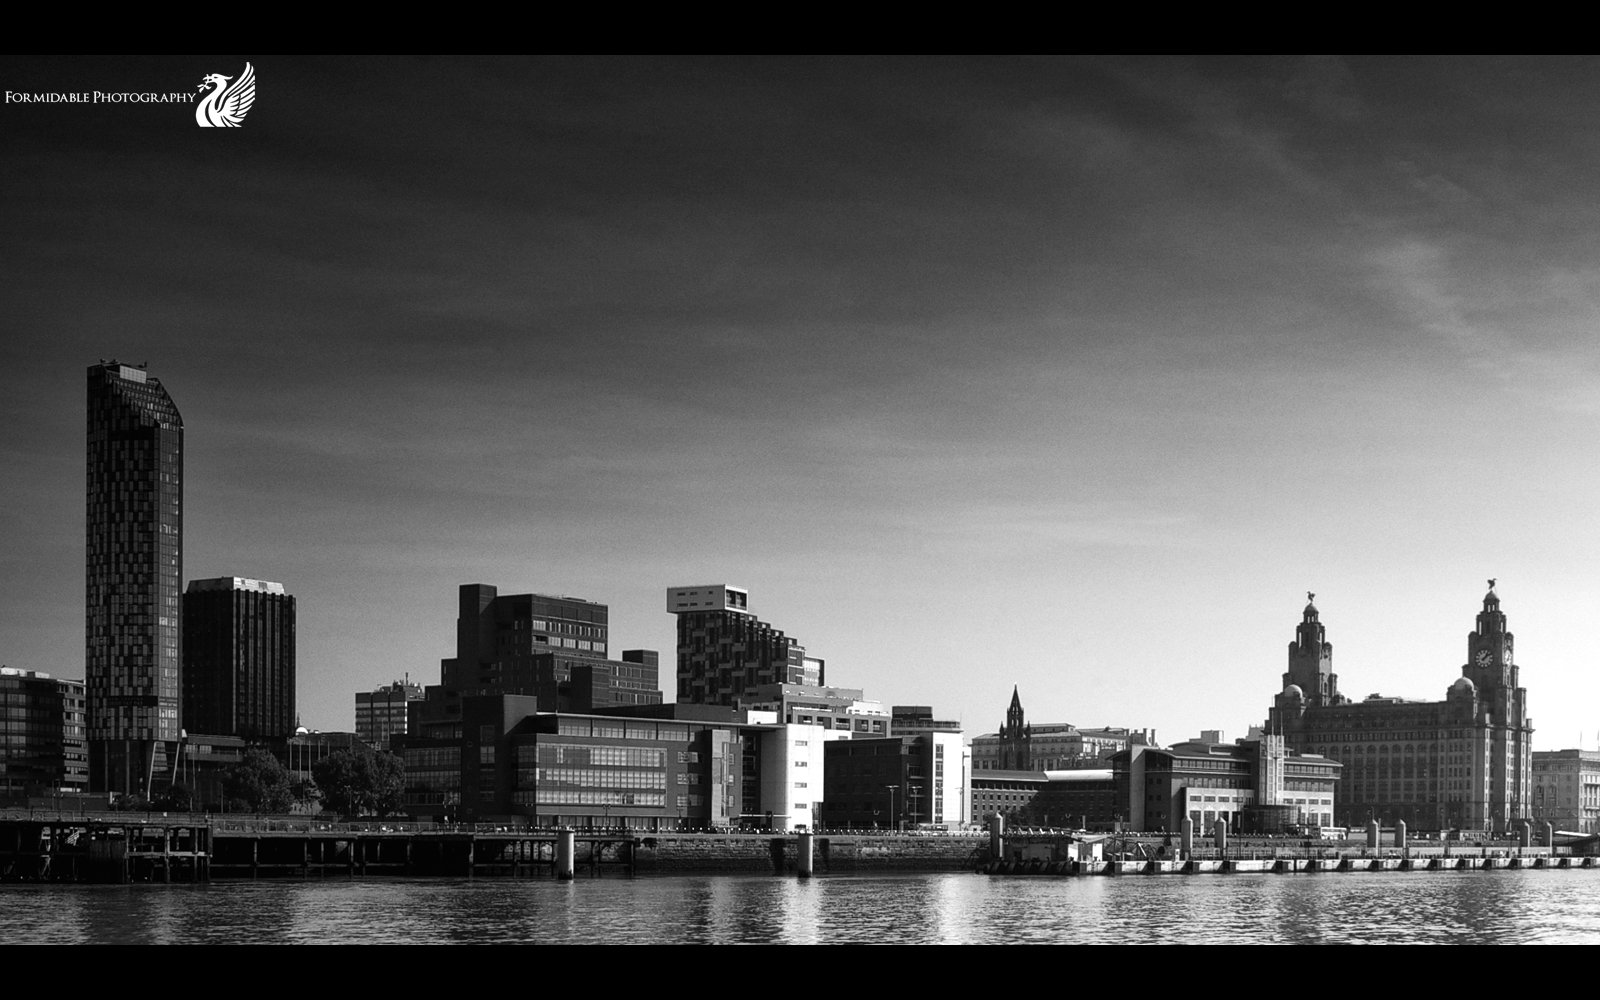 Liverpool Desktop WallpapersFormidable Photography